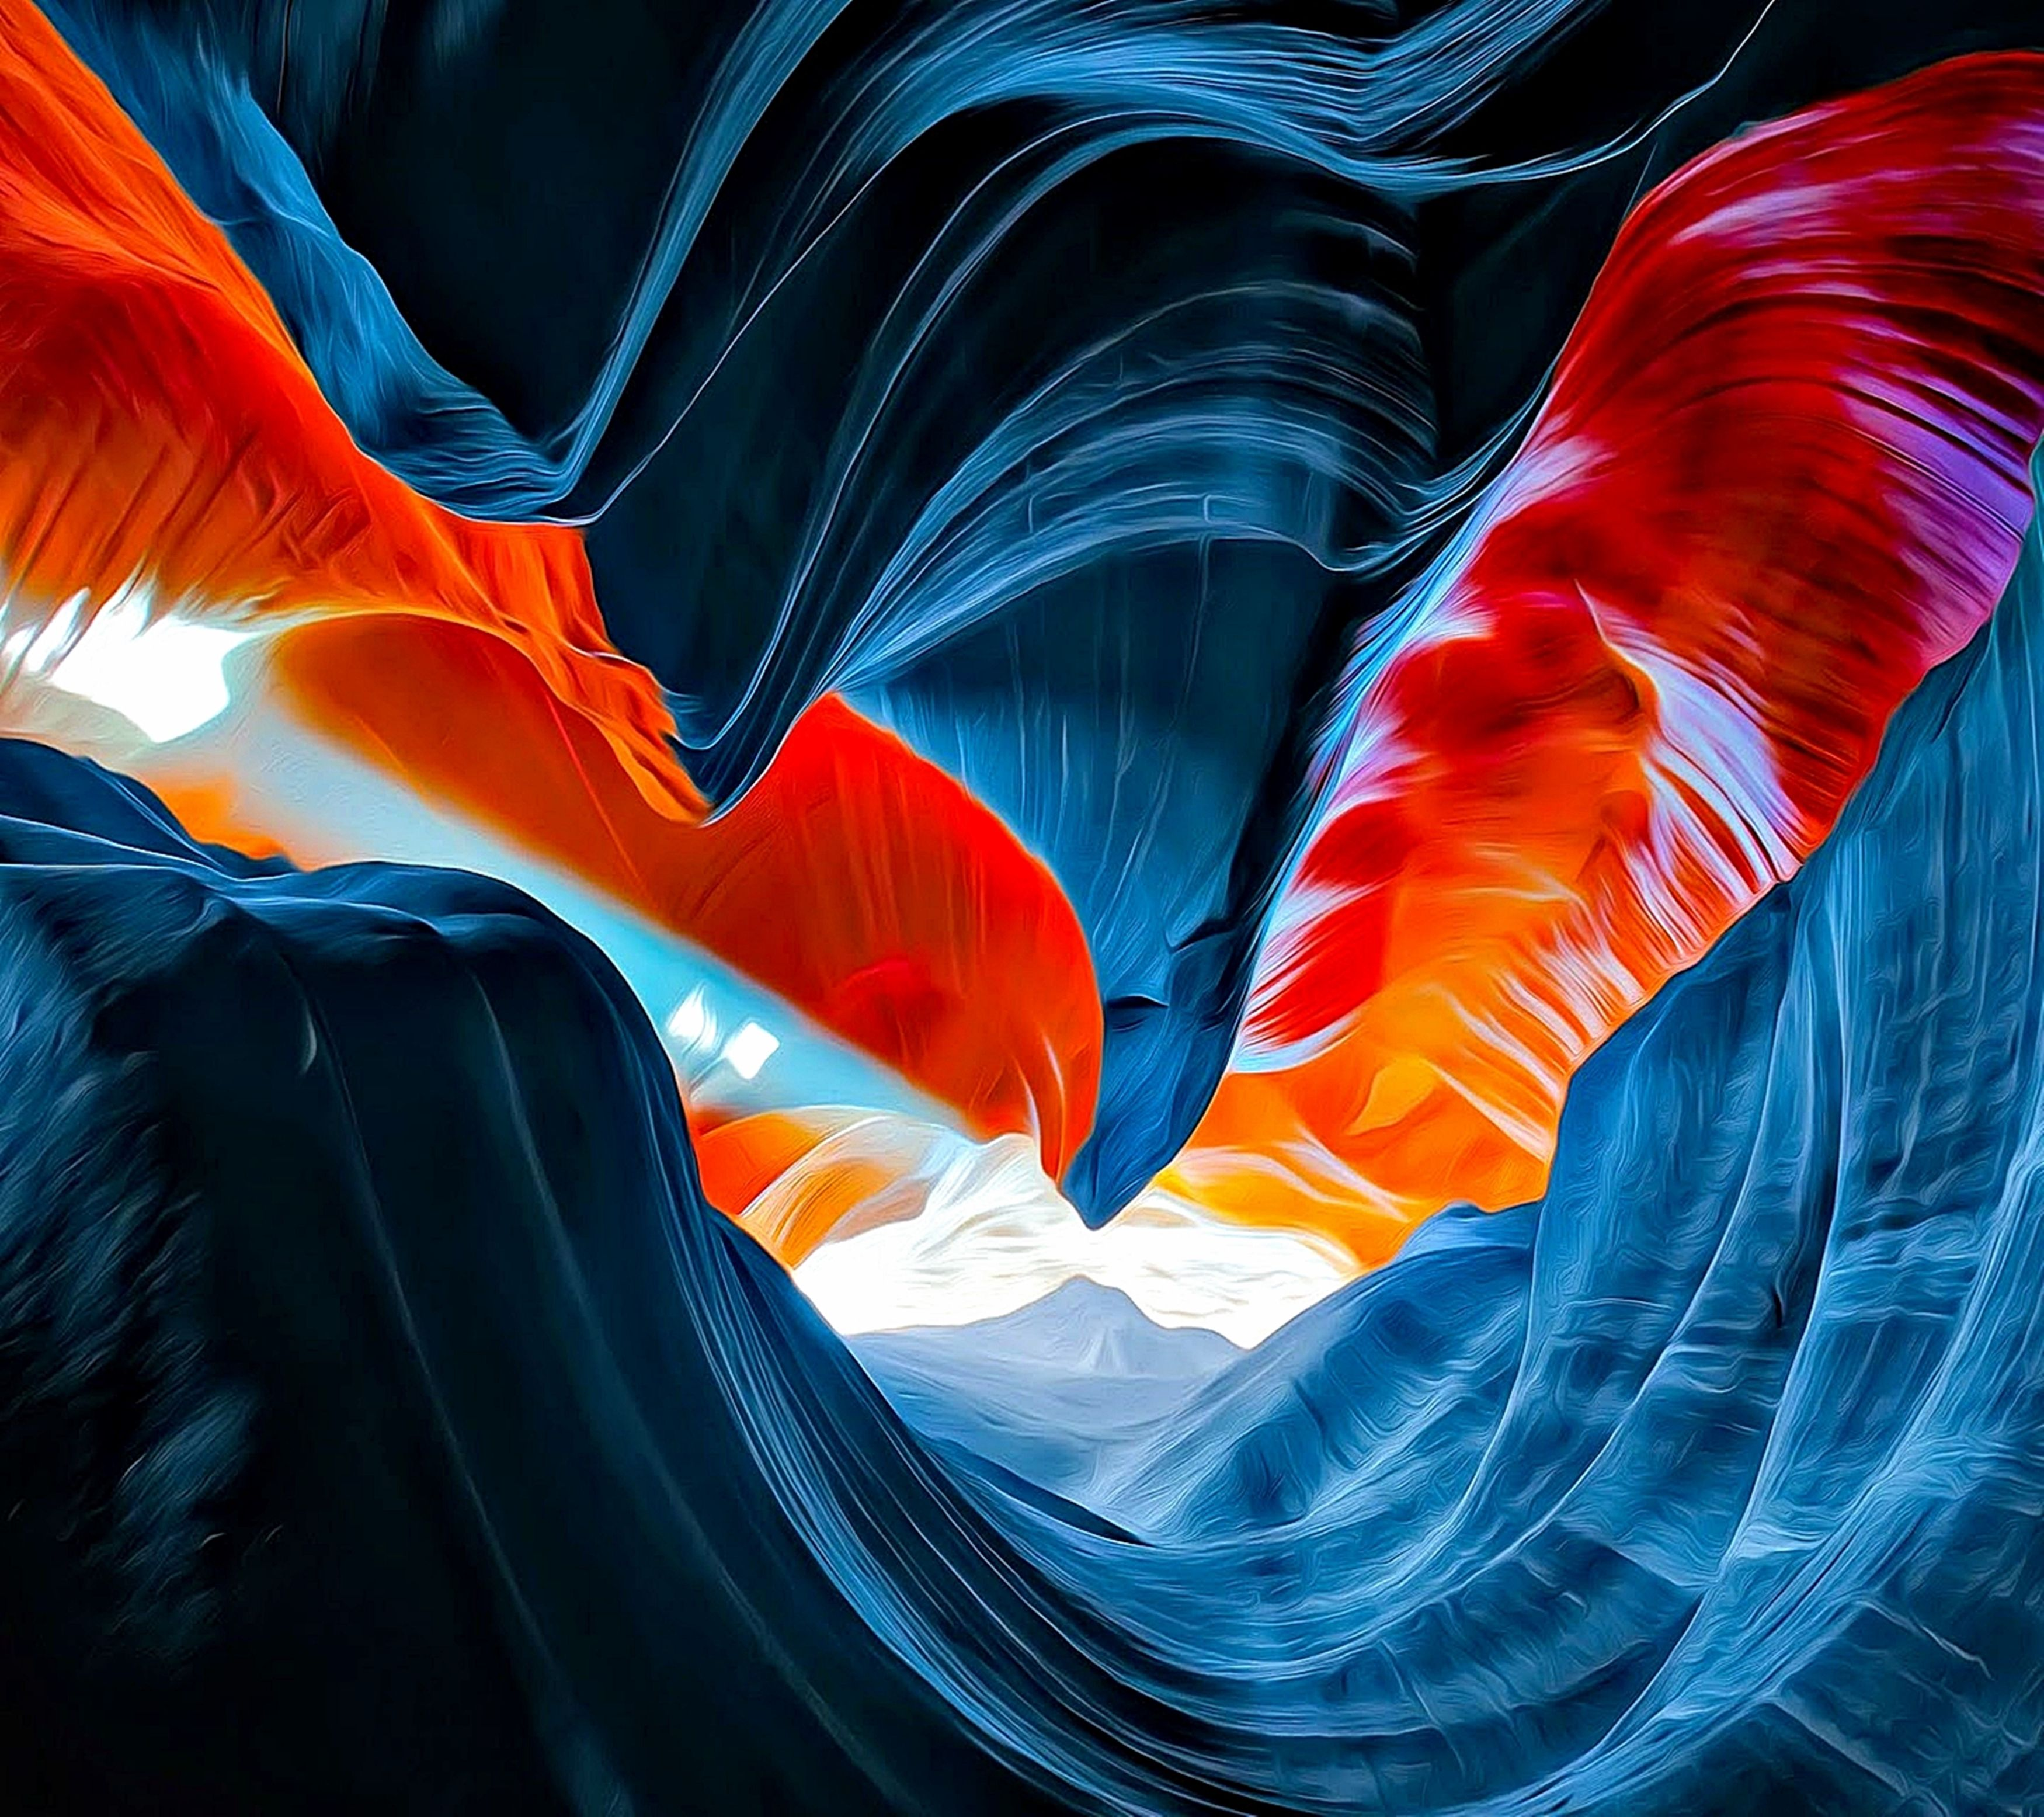 Orange Canyon Source Alex Chaves G Mkbhd Wallpapers Galaxy Wallpaper Abstract